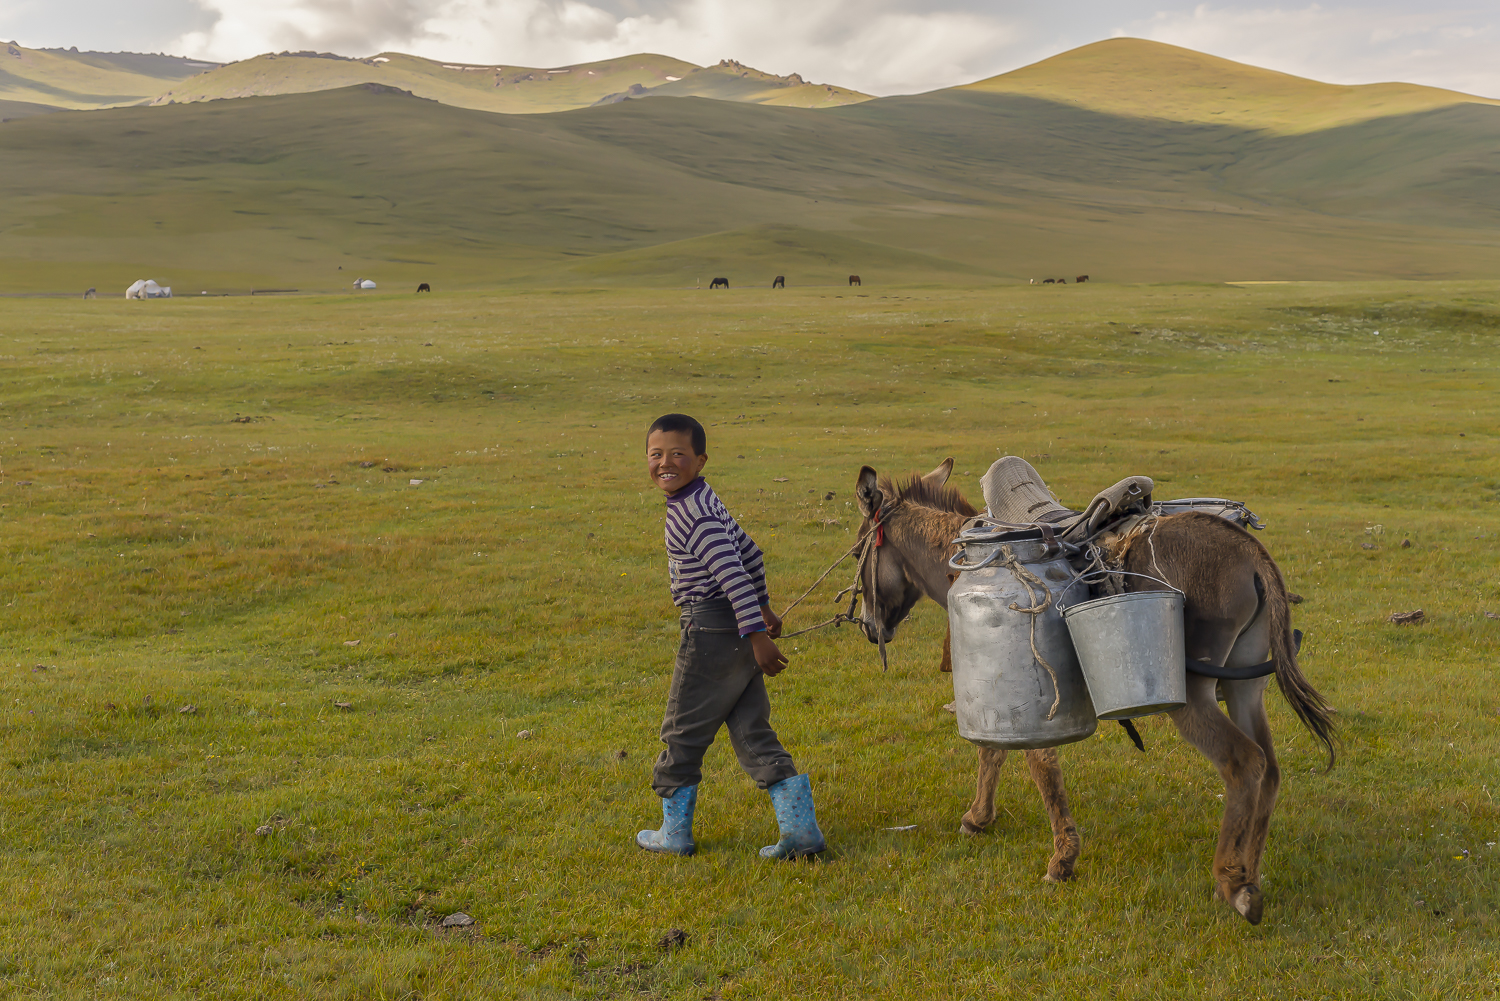 boy-milking-jo-kearney-photography-video-kyrgyzstan-nomads-milking-donkeys-photos-for-sale.jpg